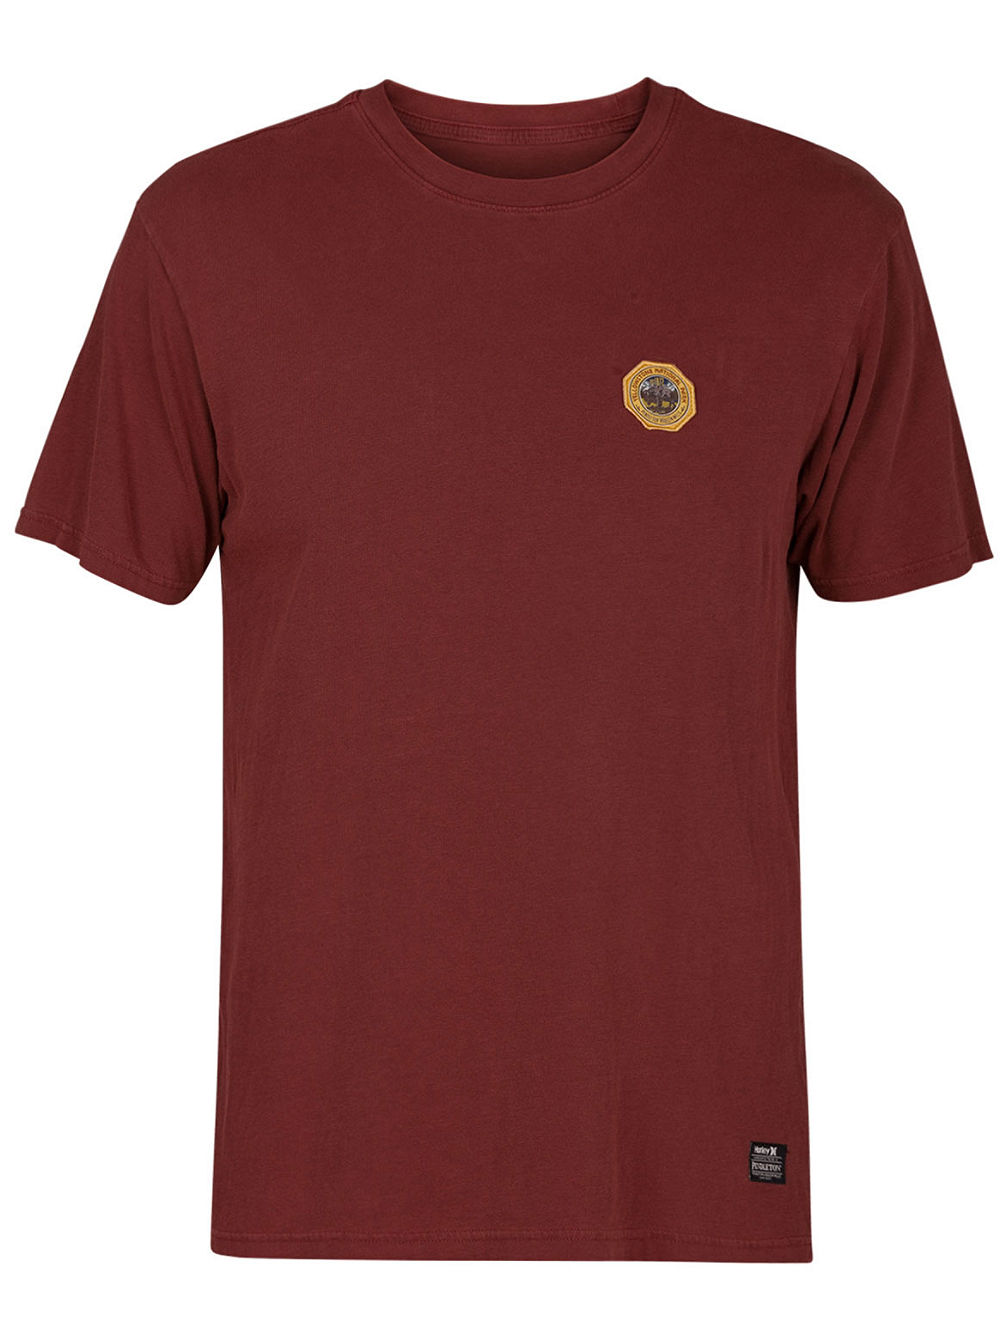 Heavy Pendleton Yellowstone T-Shirt